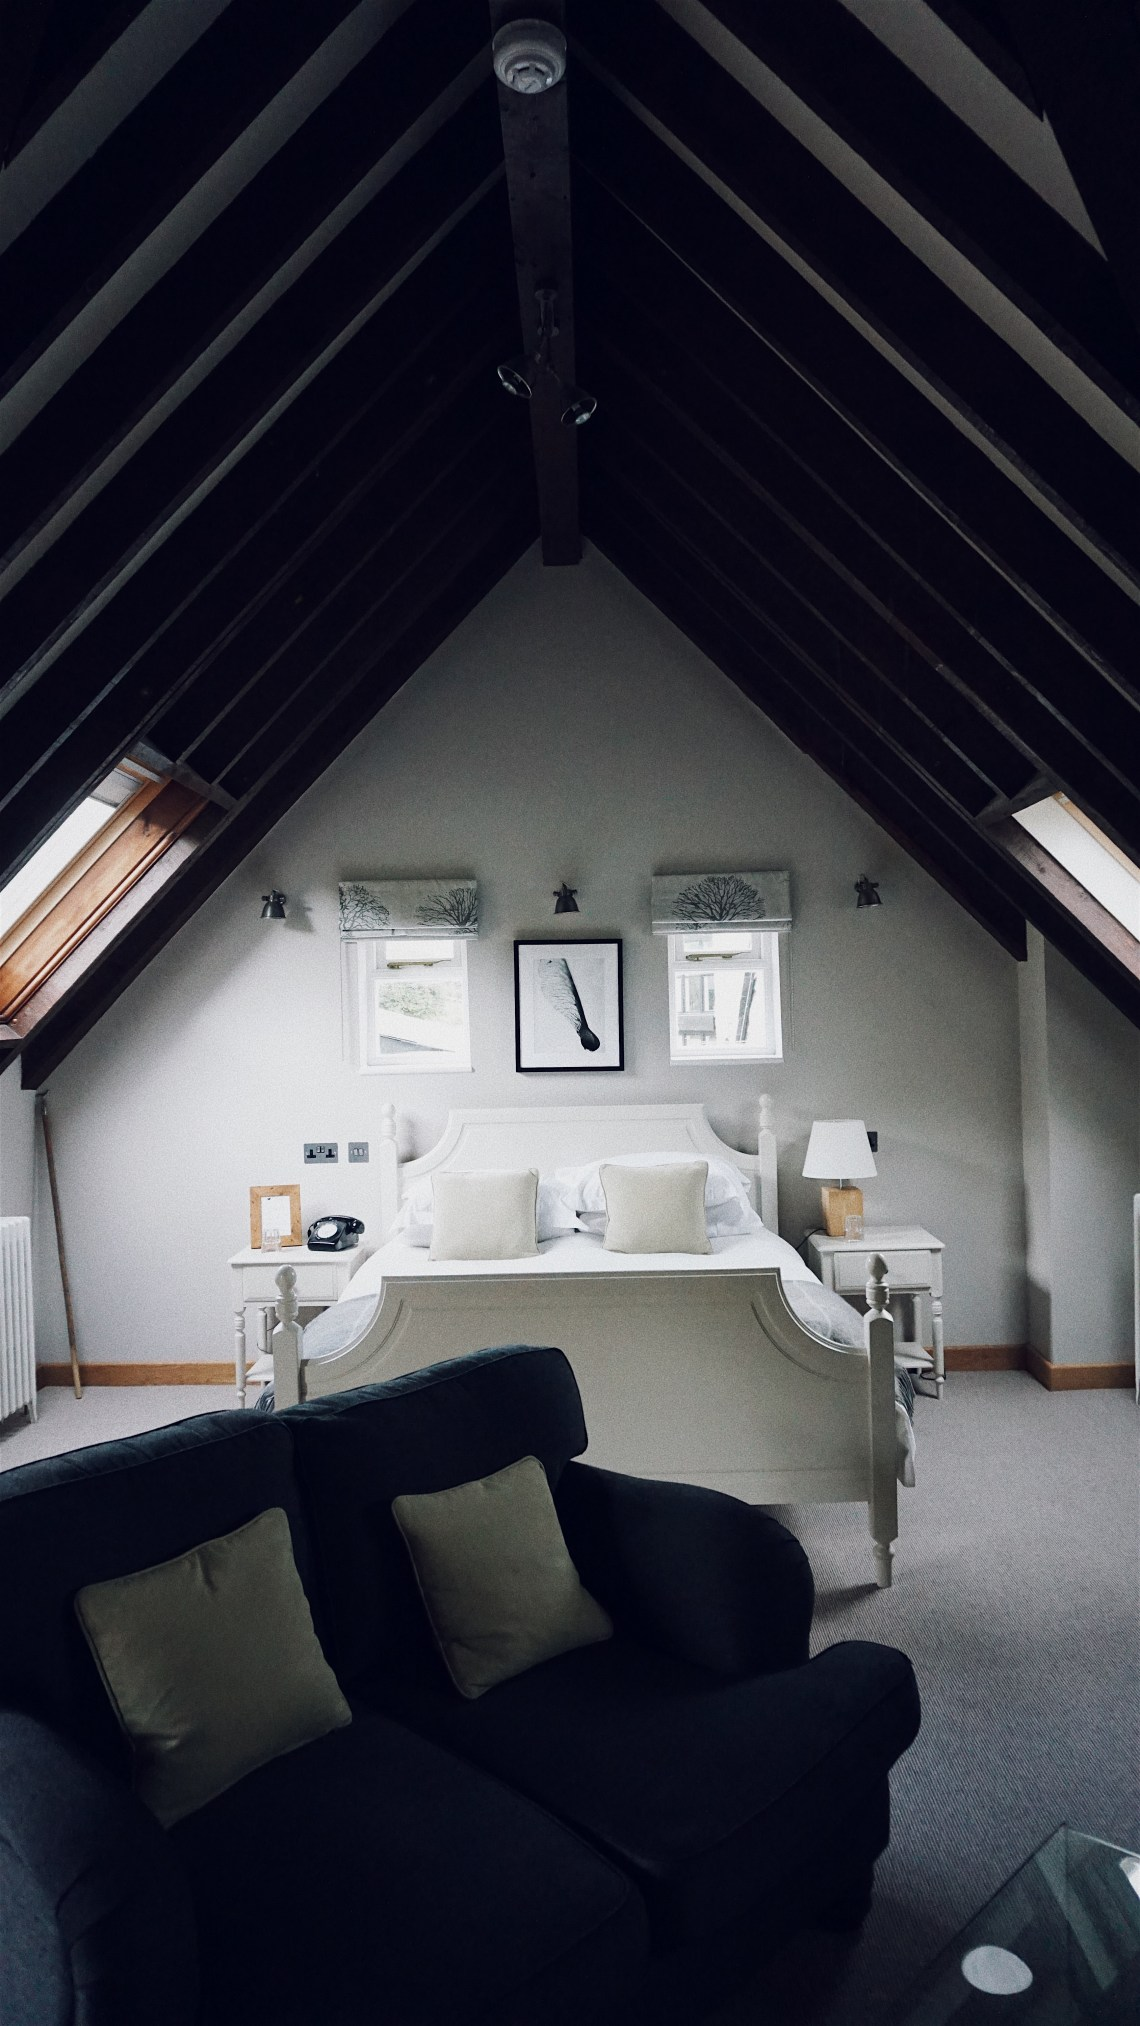 The Loft. Tudor Farmhouse, a boutique retreat in the Forest of Dean and Wye Valley. Blog by Skirmantas Petraitis.